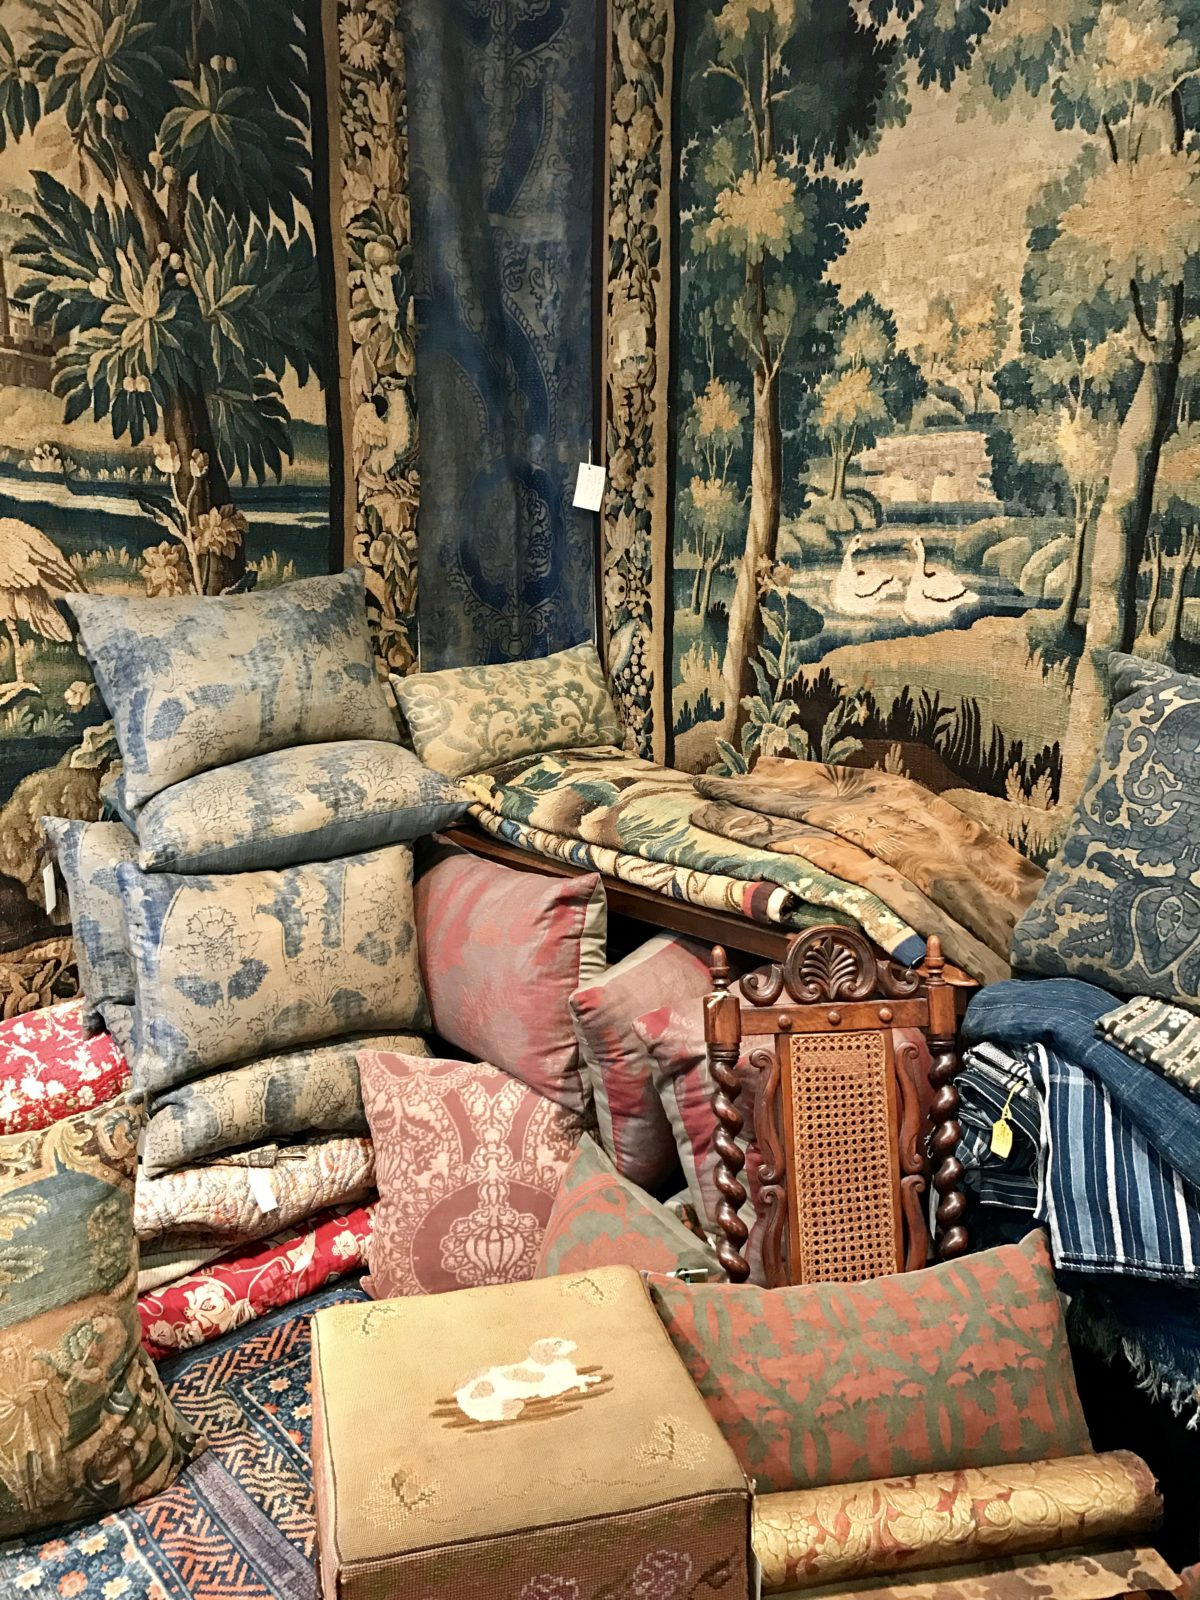 Fun Finds at the Decorative Antiques & Textiles Fair